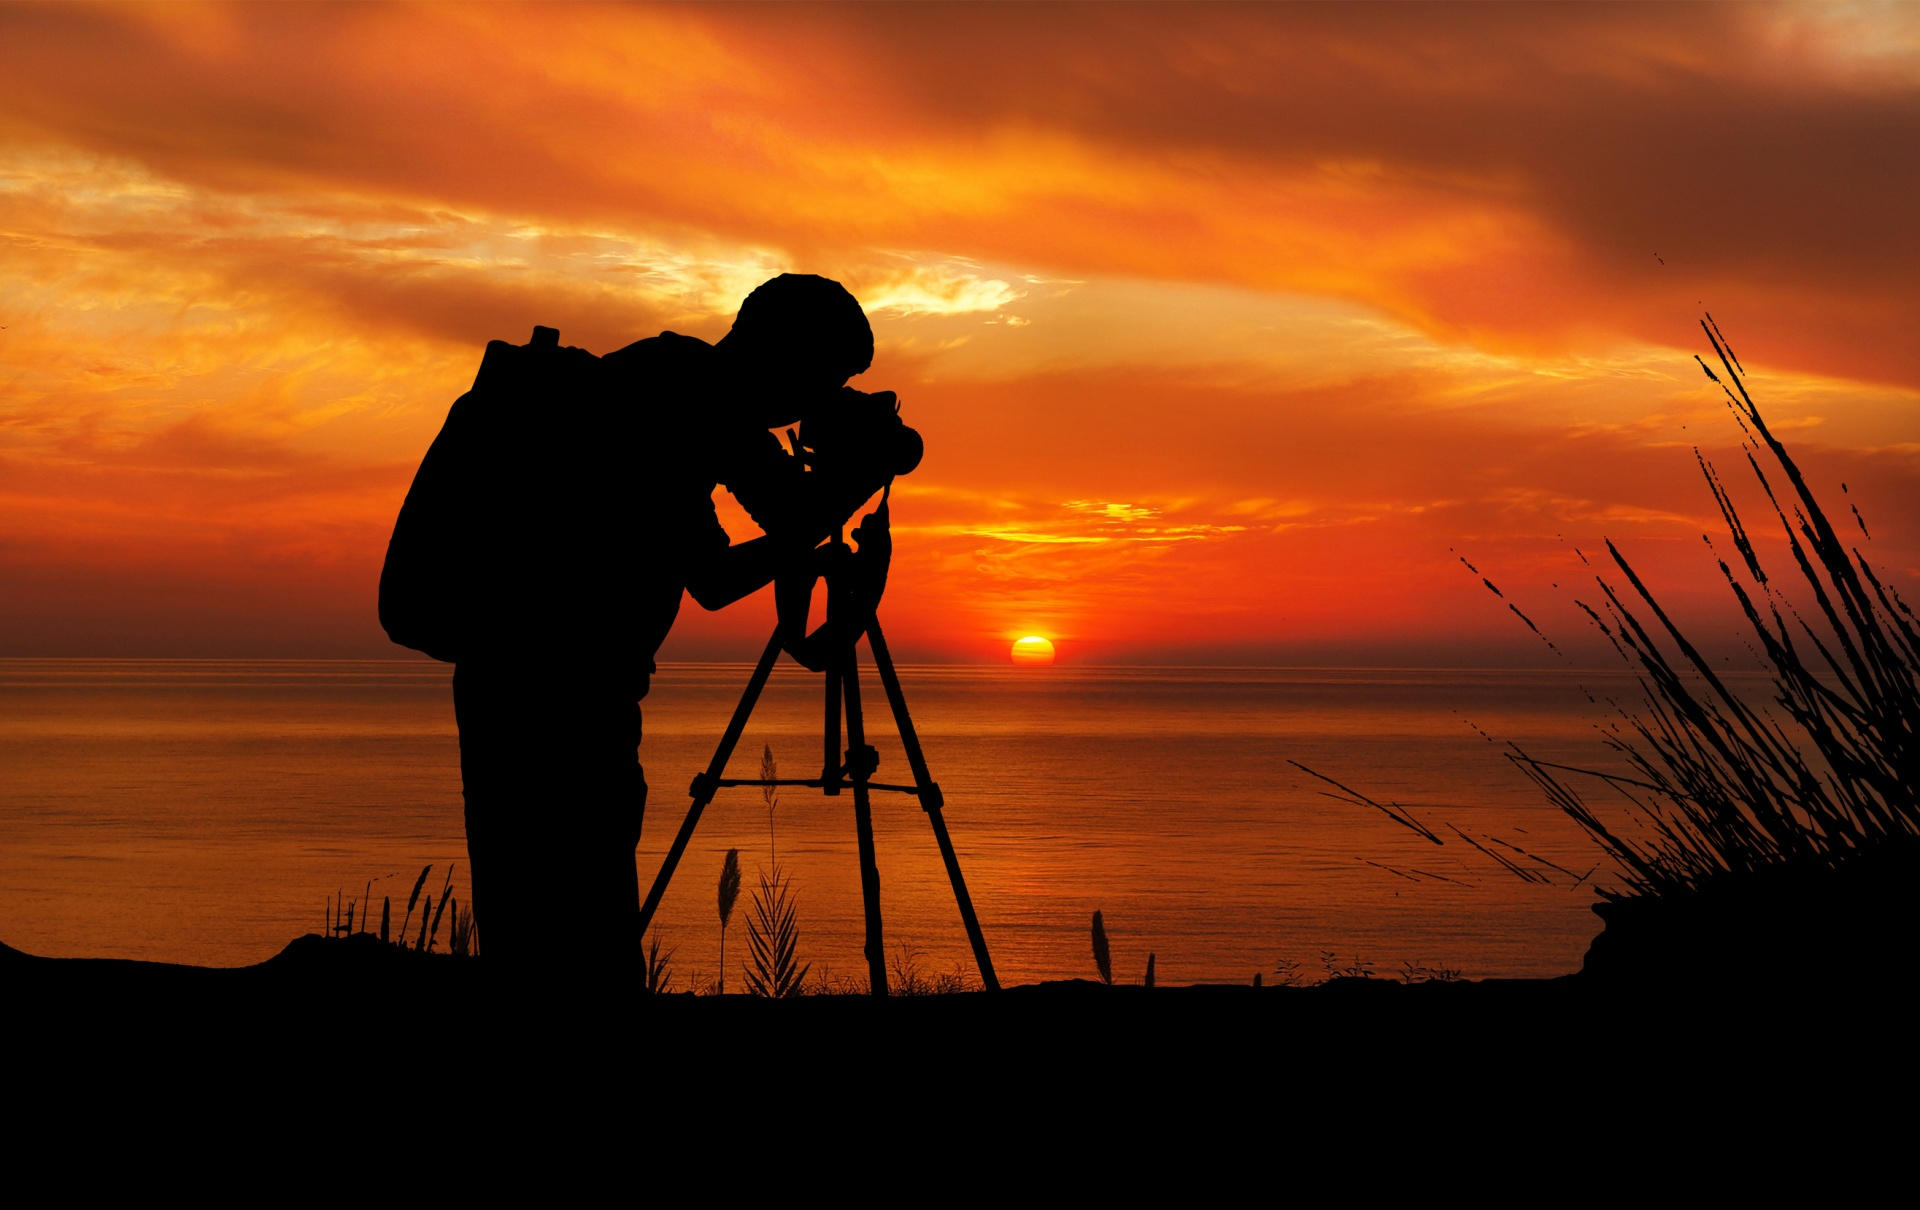 Bilder Vom Fotografen Photographer At Sunset Silhouette Free Stock Photo